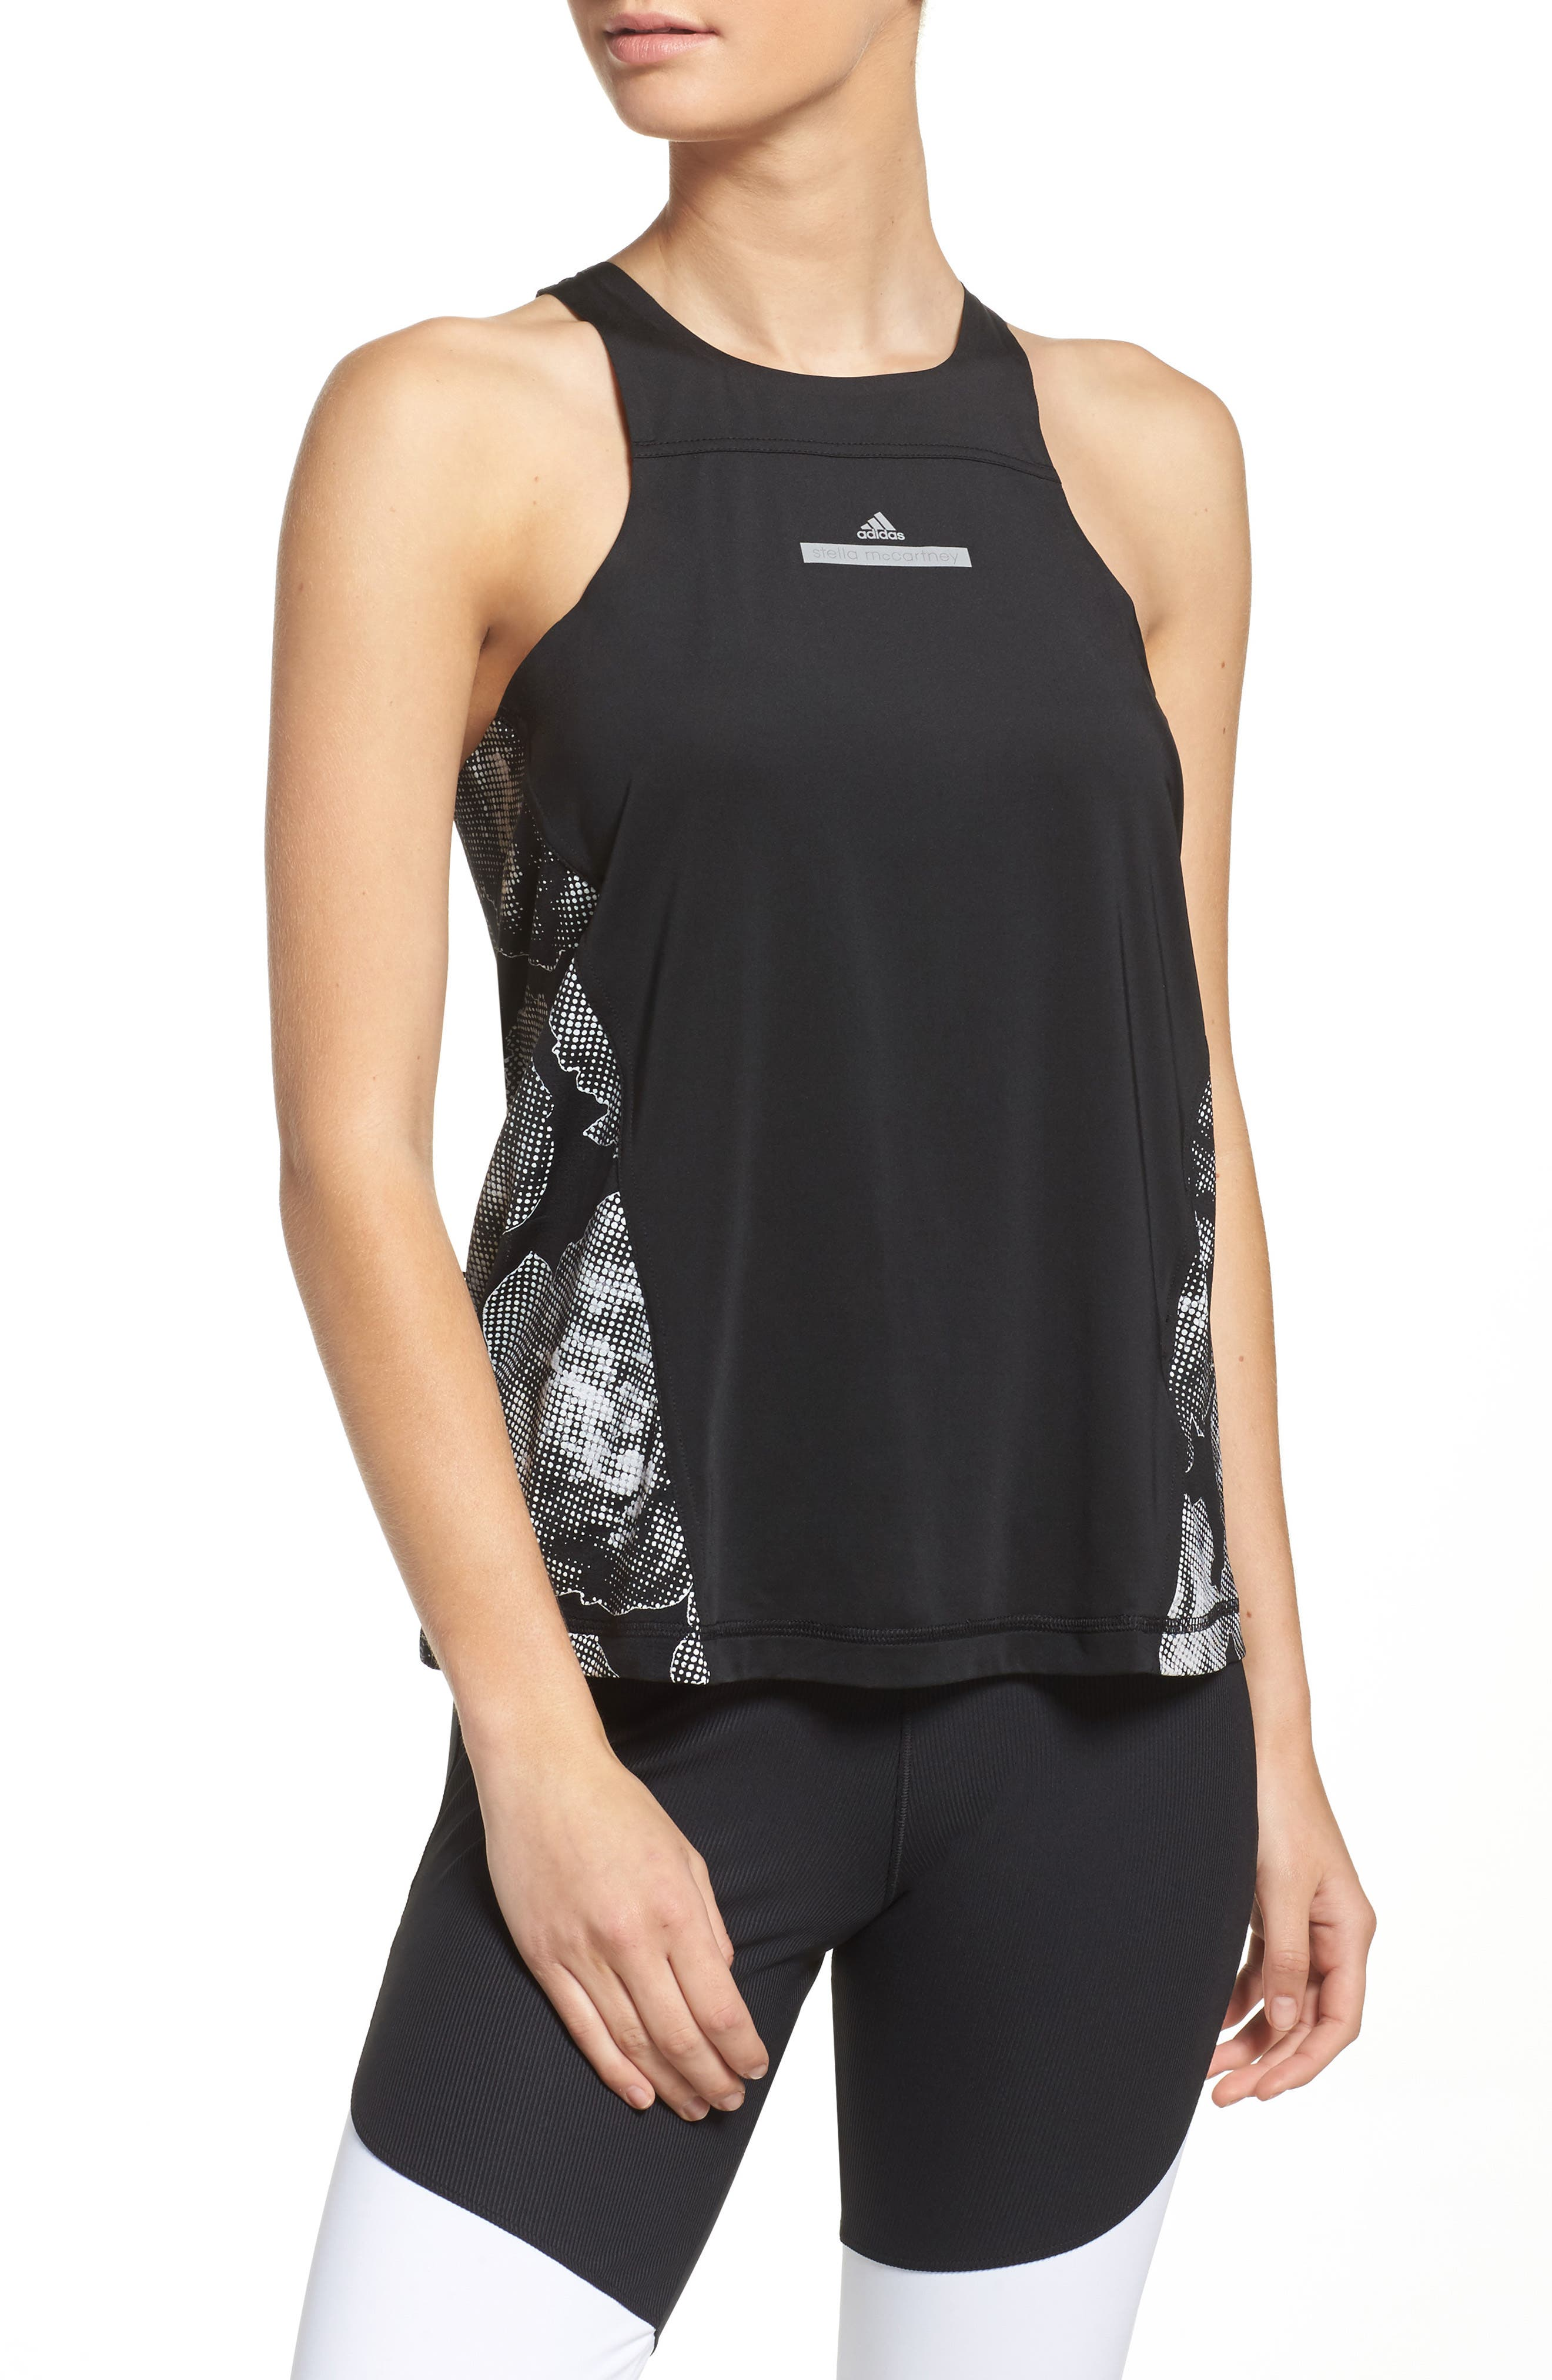 Main Image - adidas by Stella McCartney Run Adizero Tank